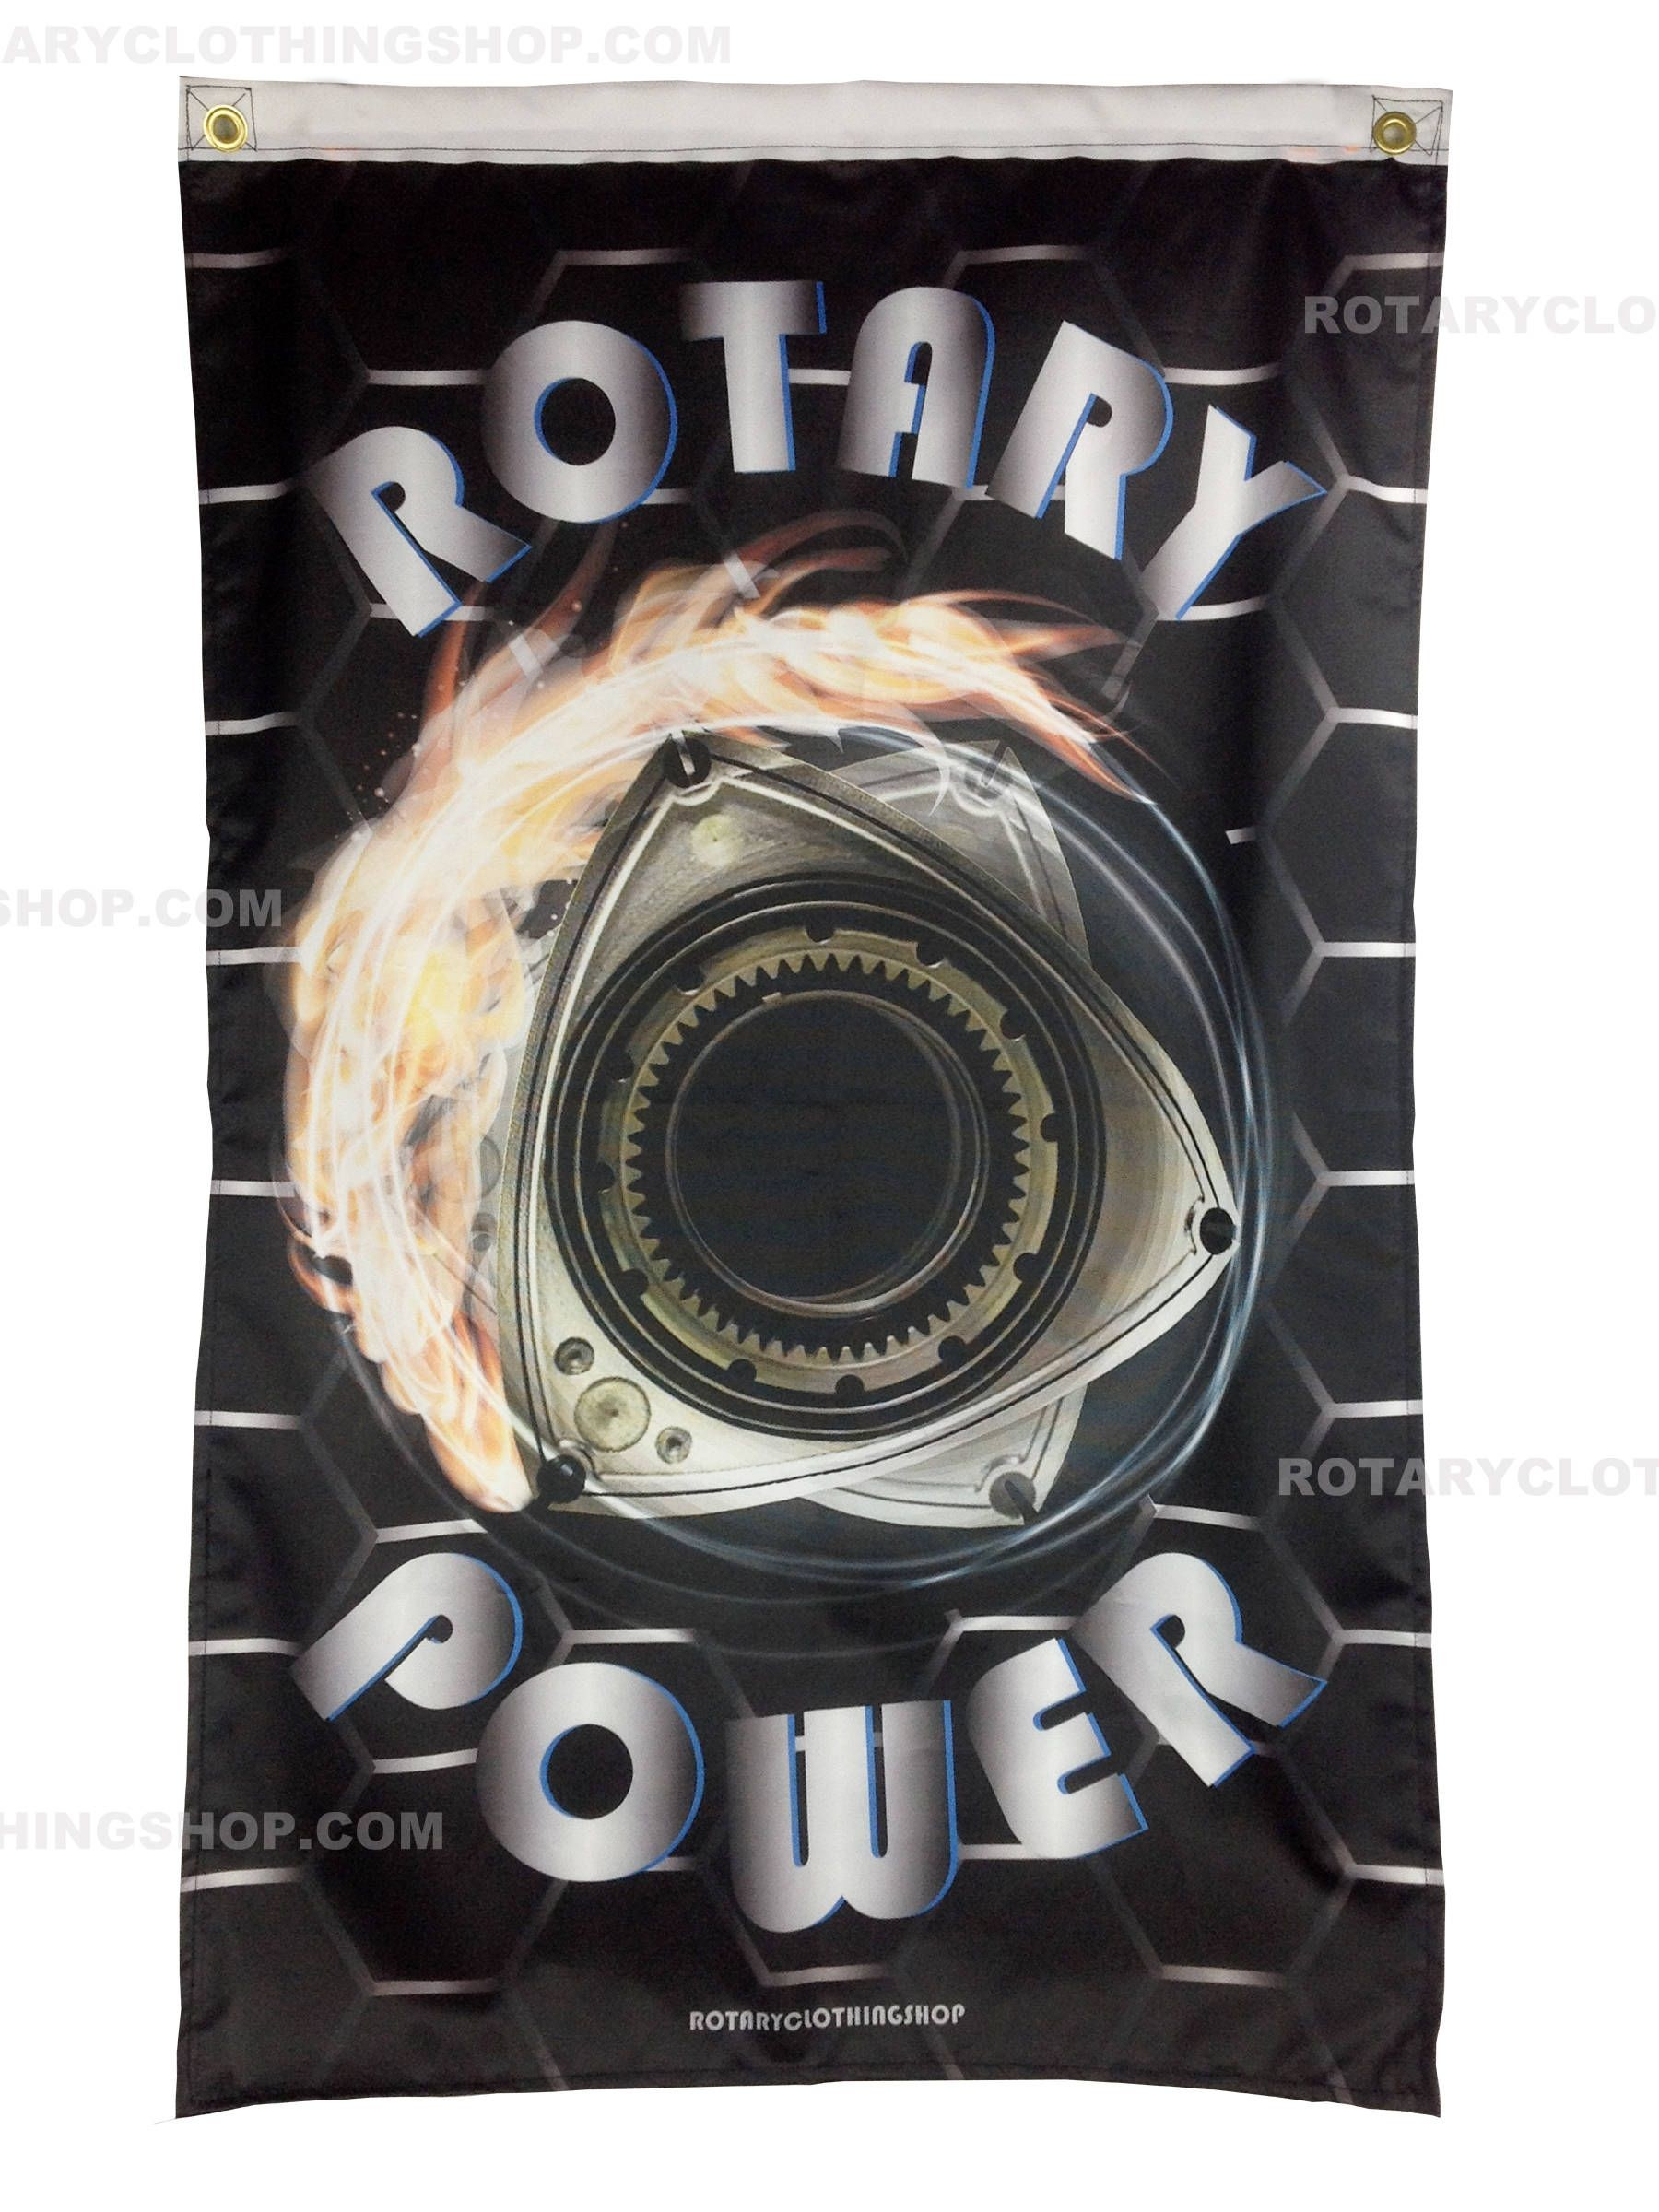 Rotary Motor Diagram Rotary Power Flag Wankel Banner Rotary Engine Limited Edition Of Rotary Motor Diagram